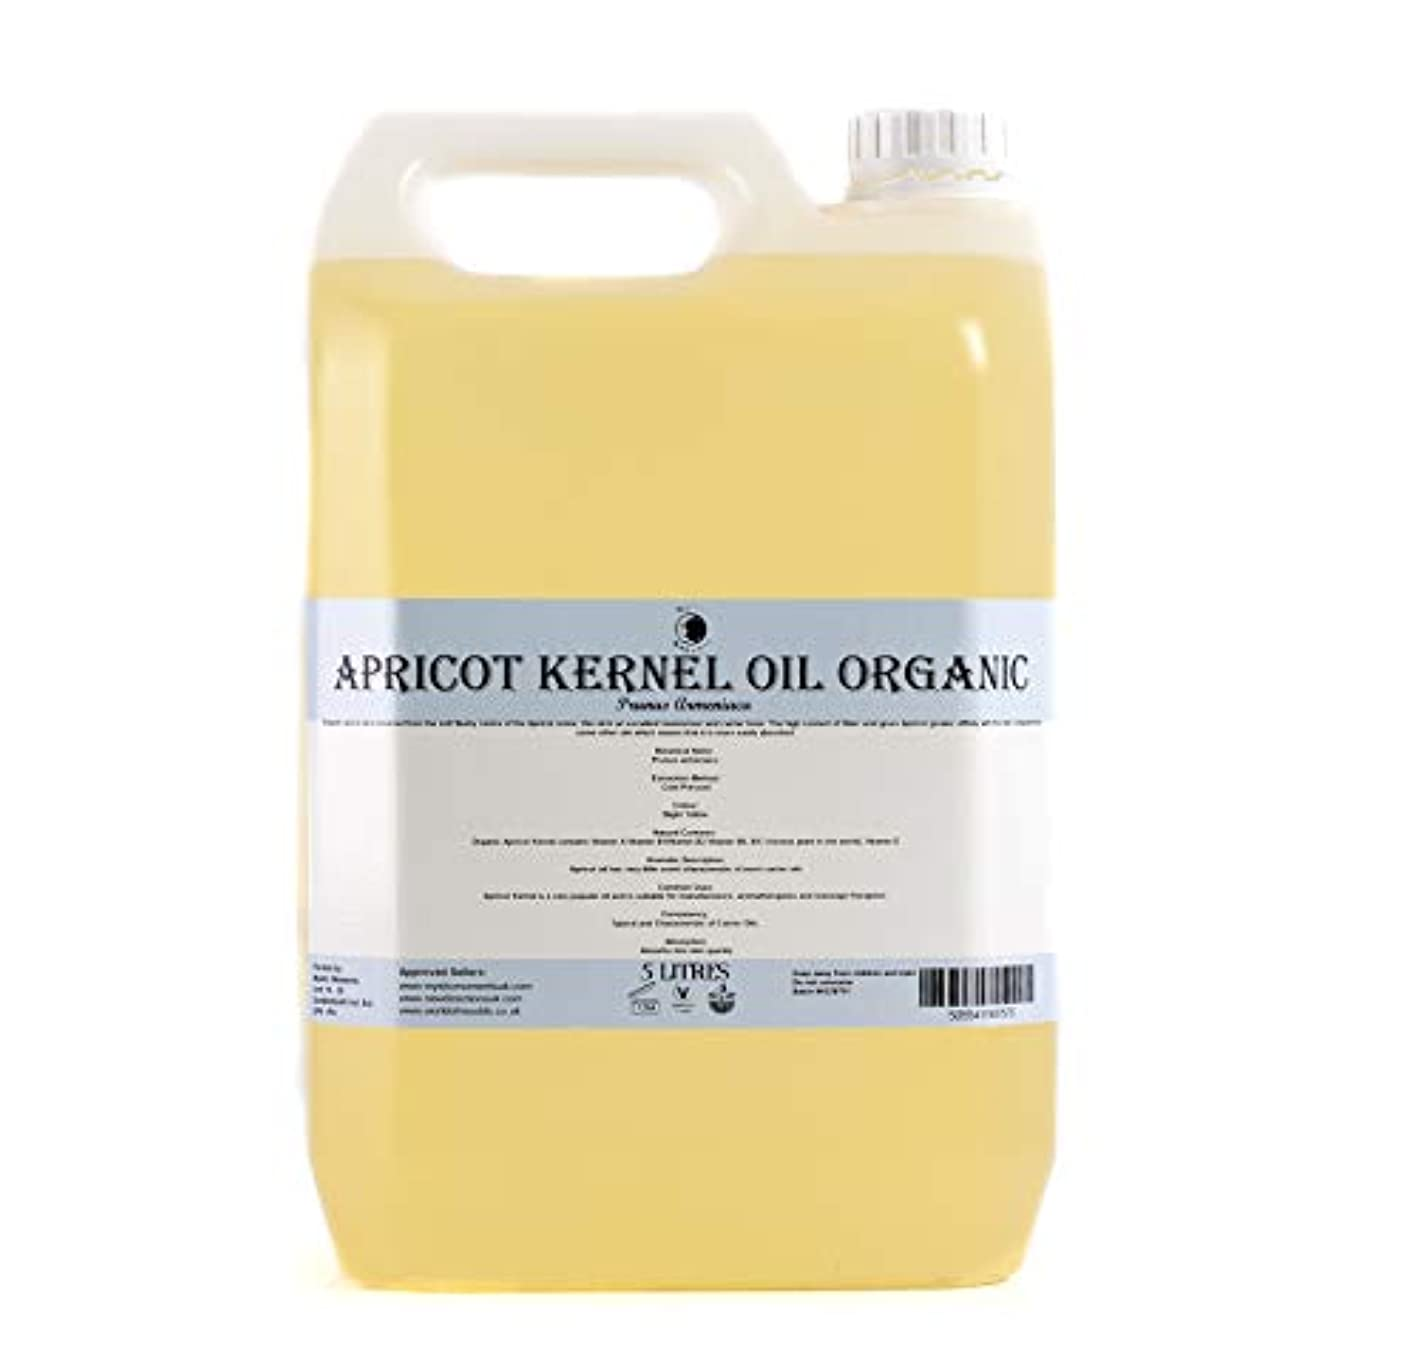 Mystic Moments | Apricot Kernel Organic Carrier Oil - 5 Litres - 100% Pure